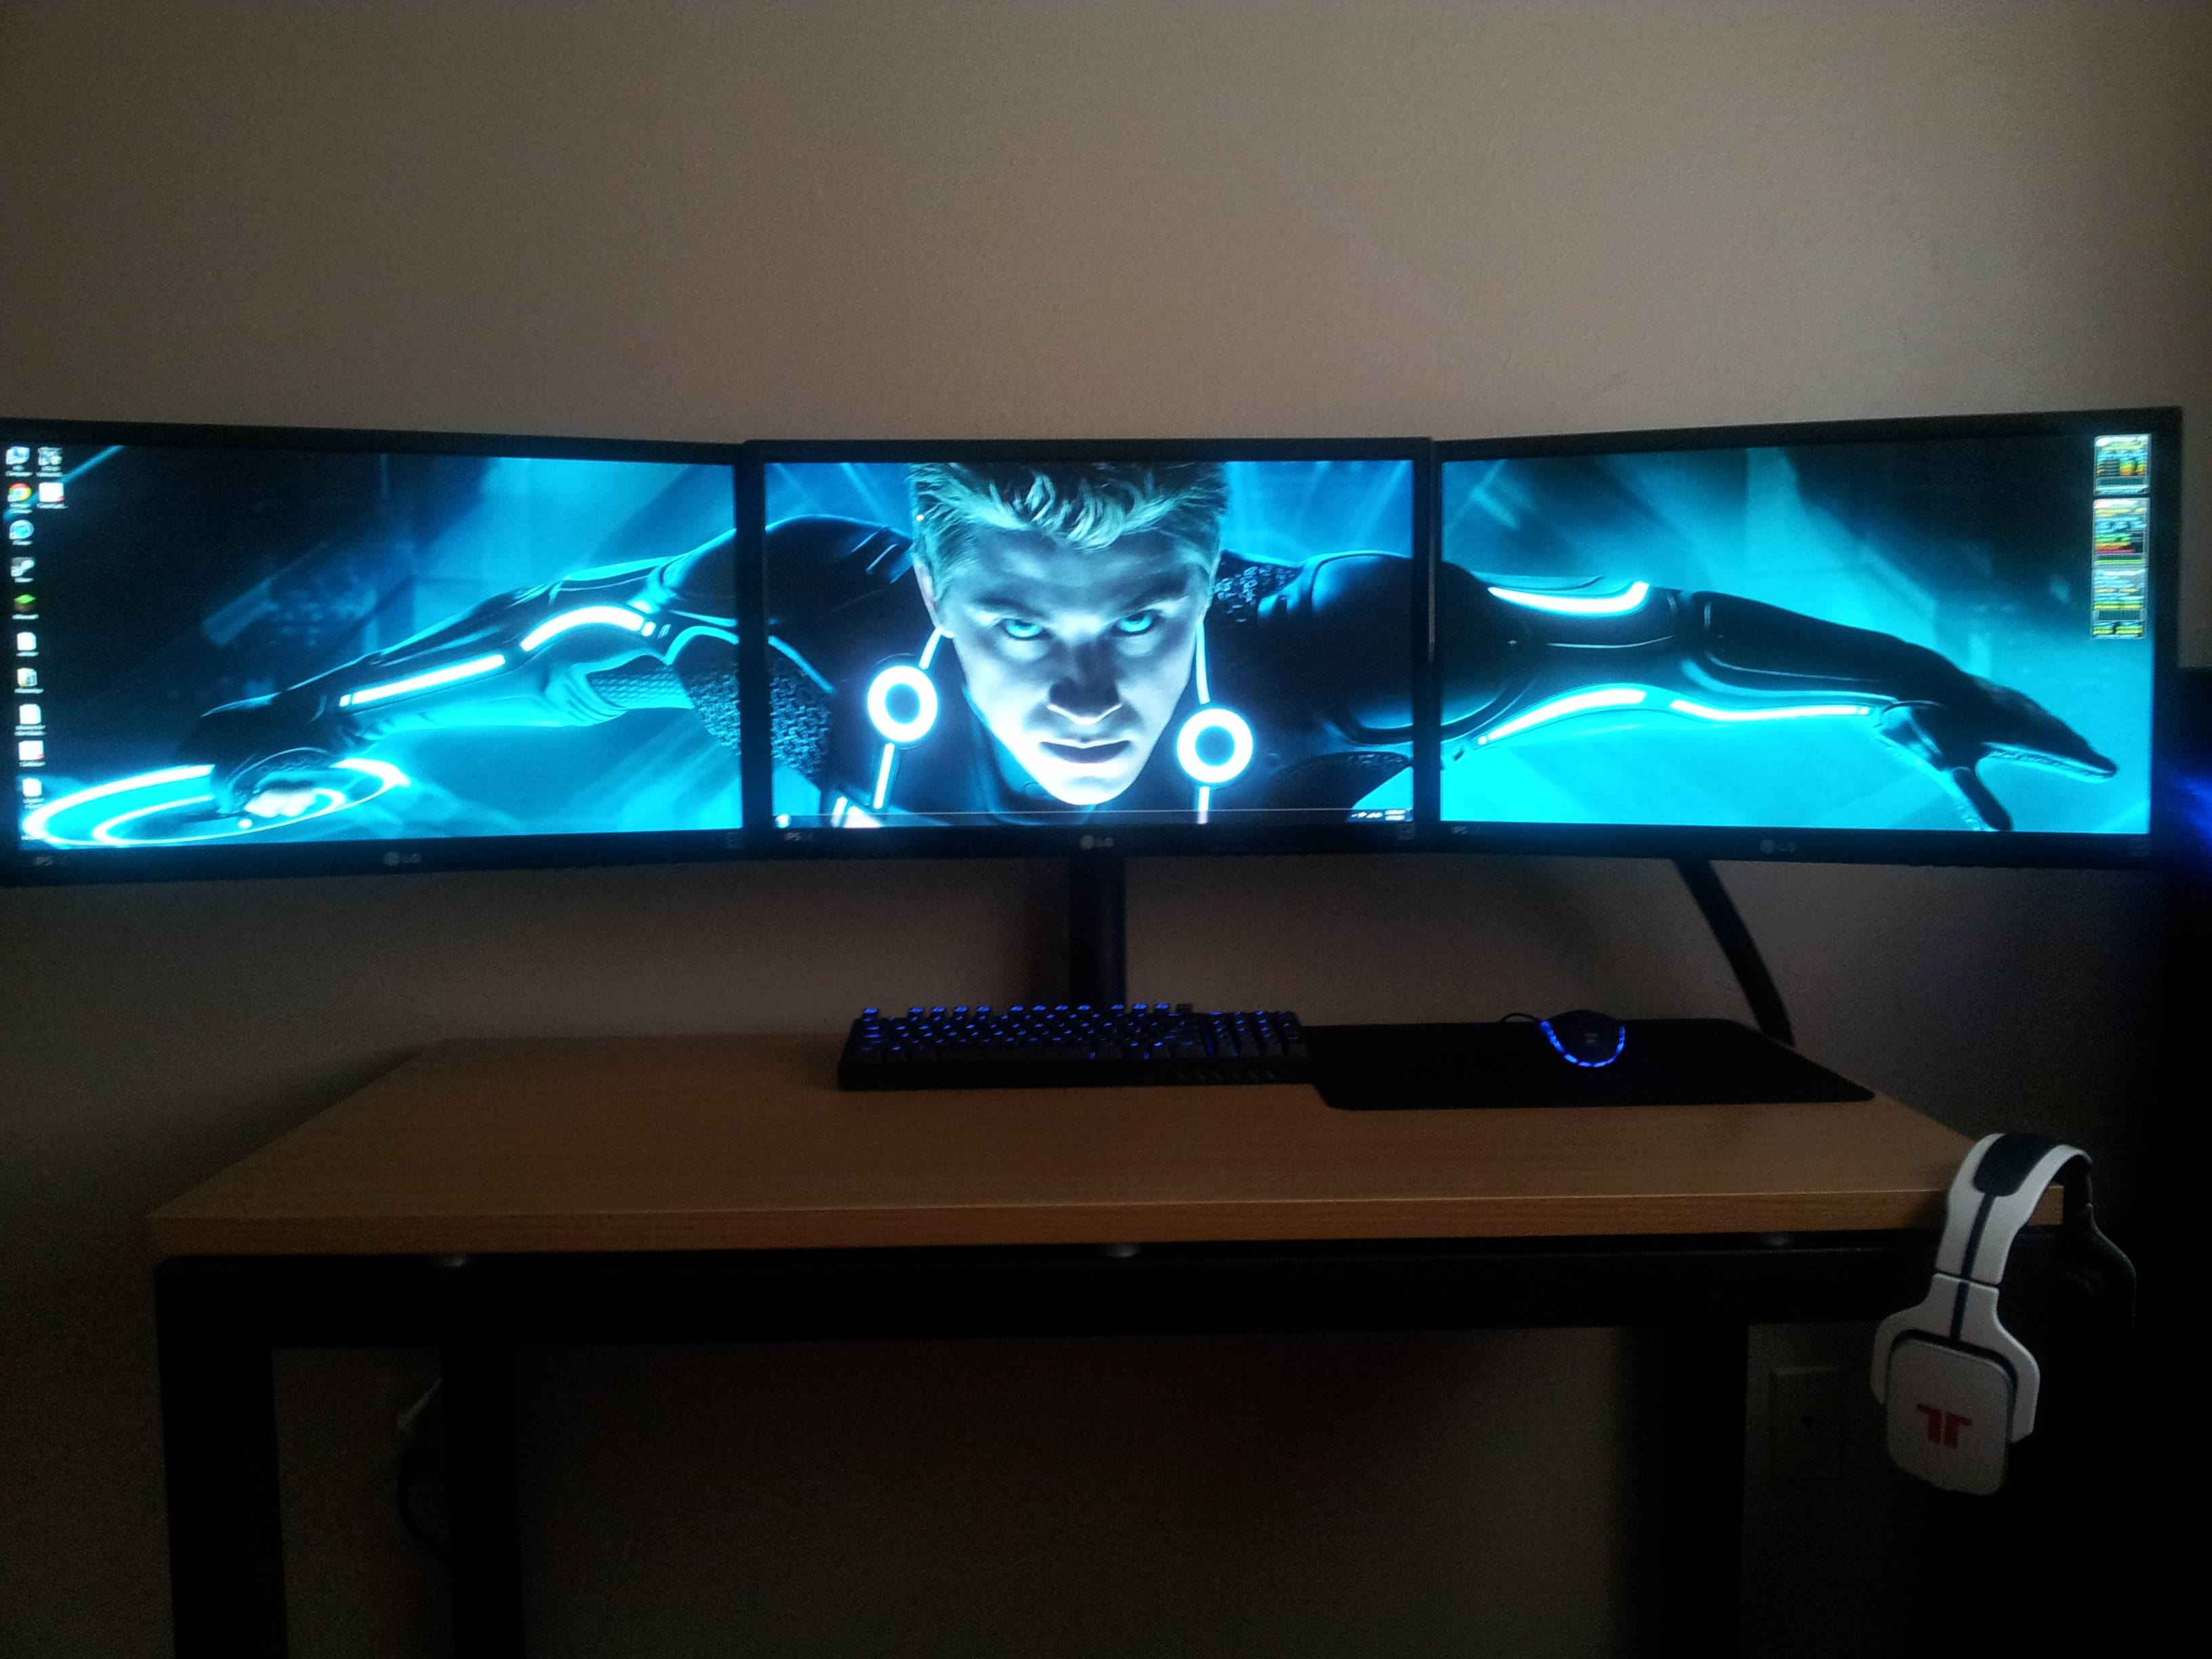 Gaming Setup Wallpaper Wallpapersafari